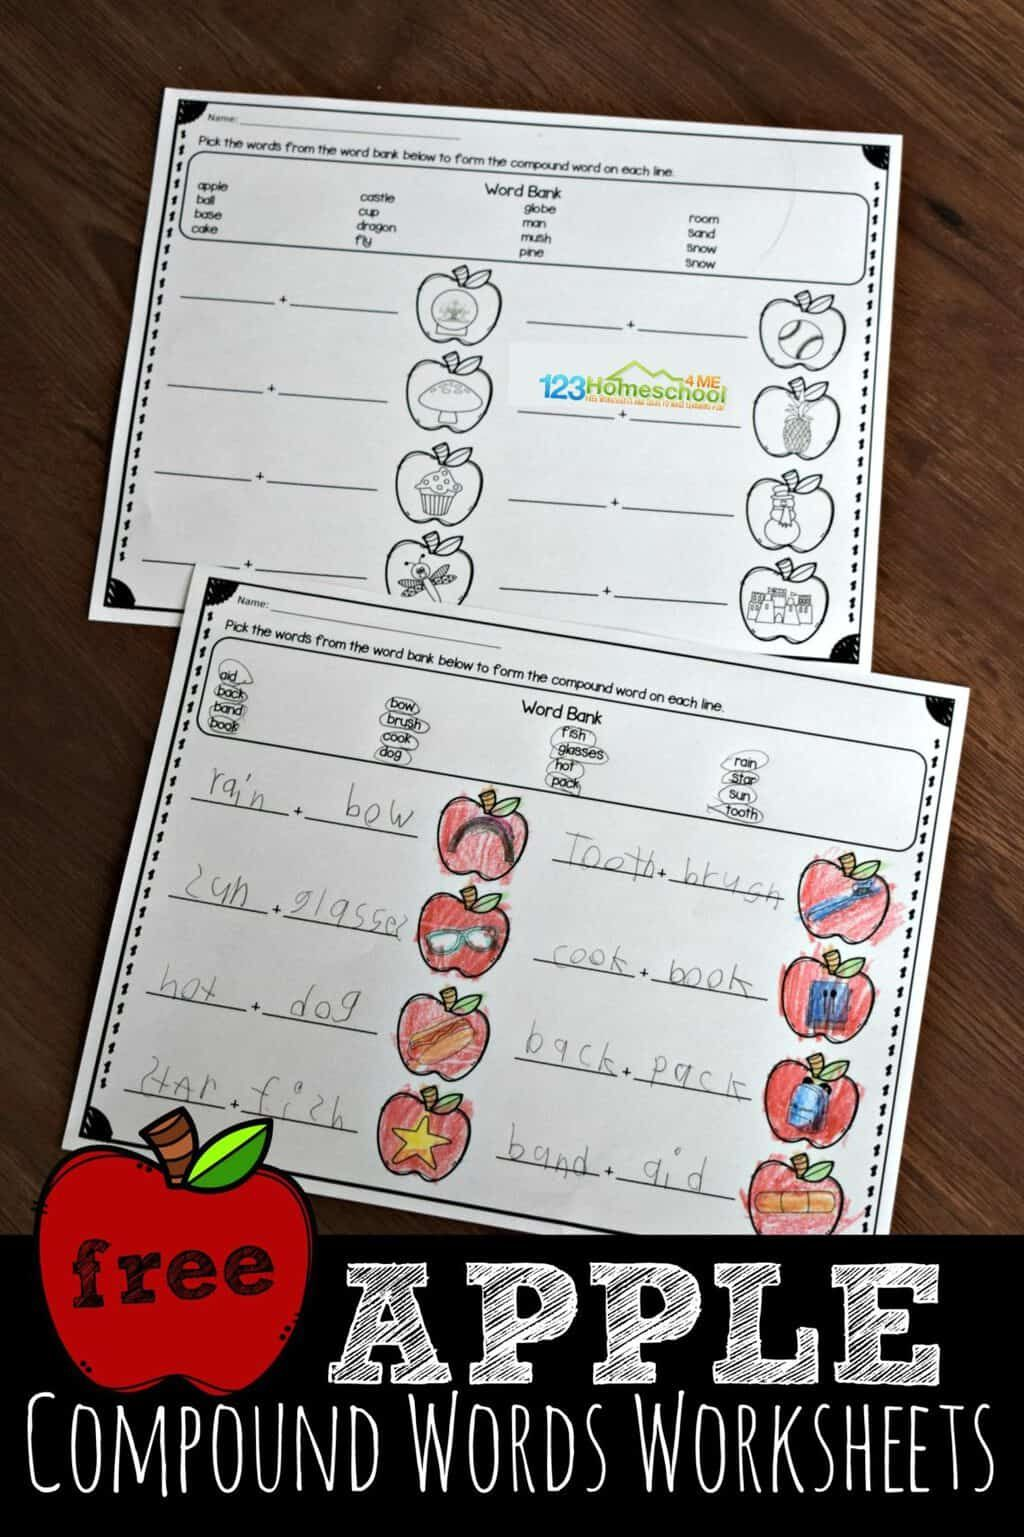 Free Apple Compound Words Worksheets Compound Words Worksheets Compound Words Kids Worksheets Printables [ 1537 x 1024 Pixel ]